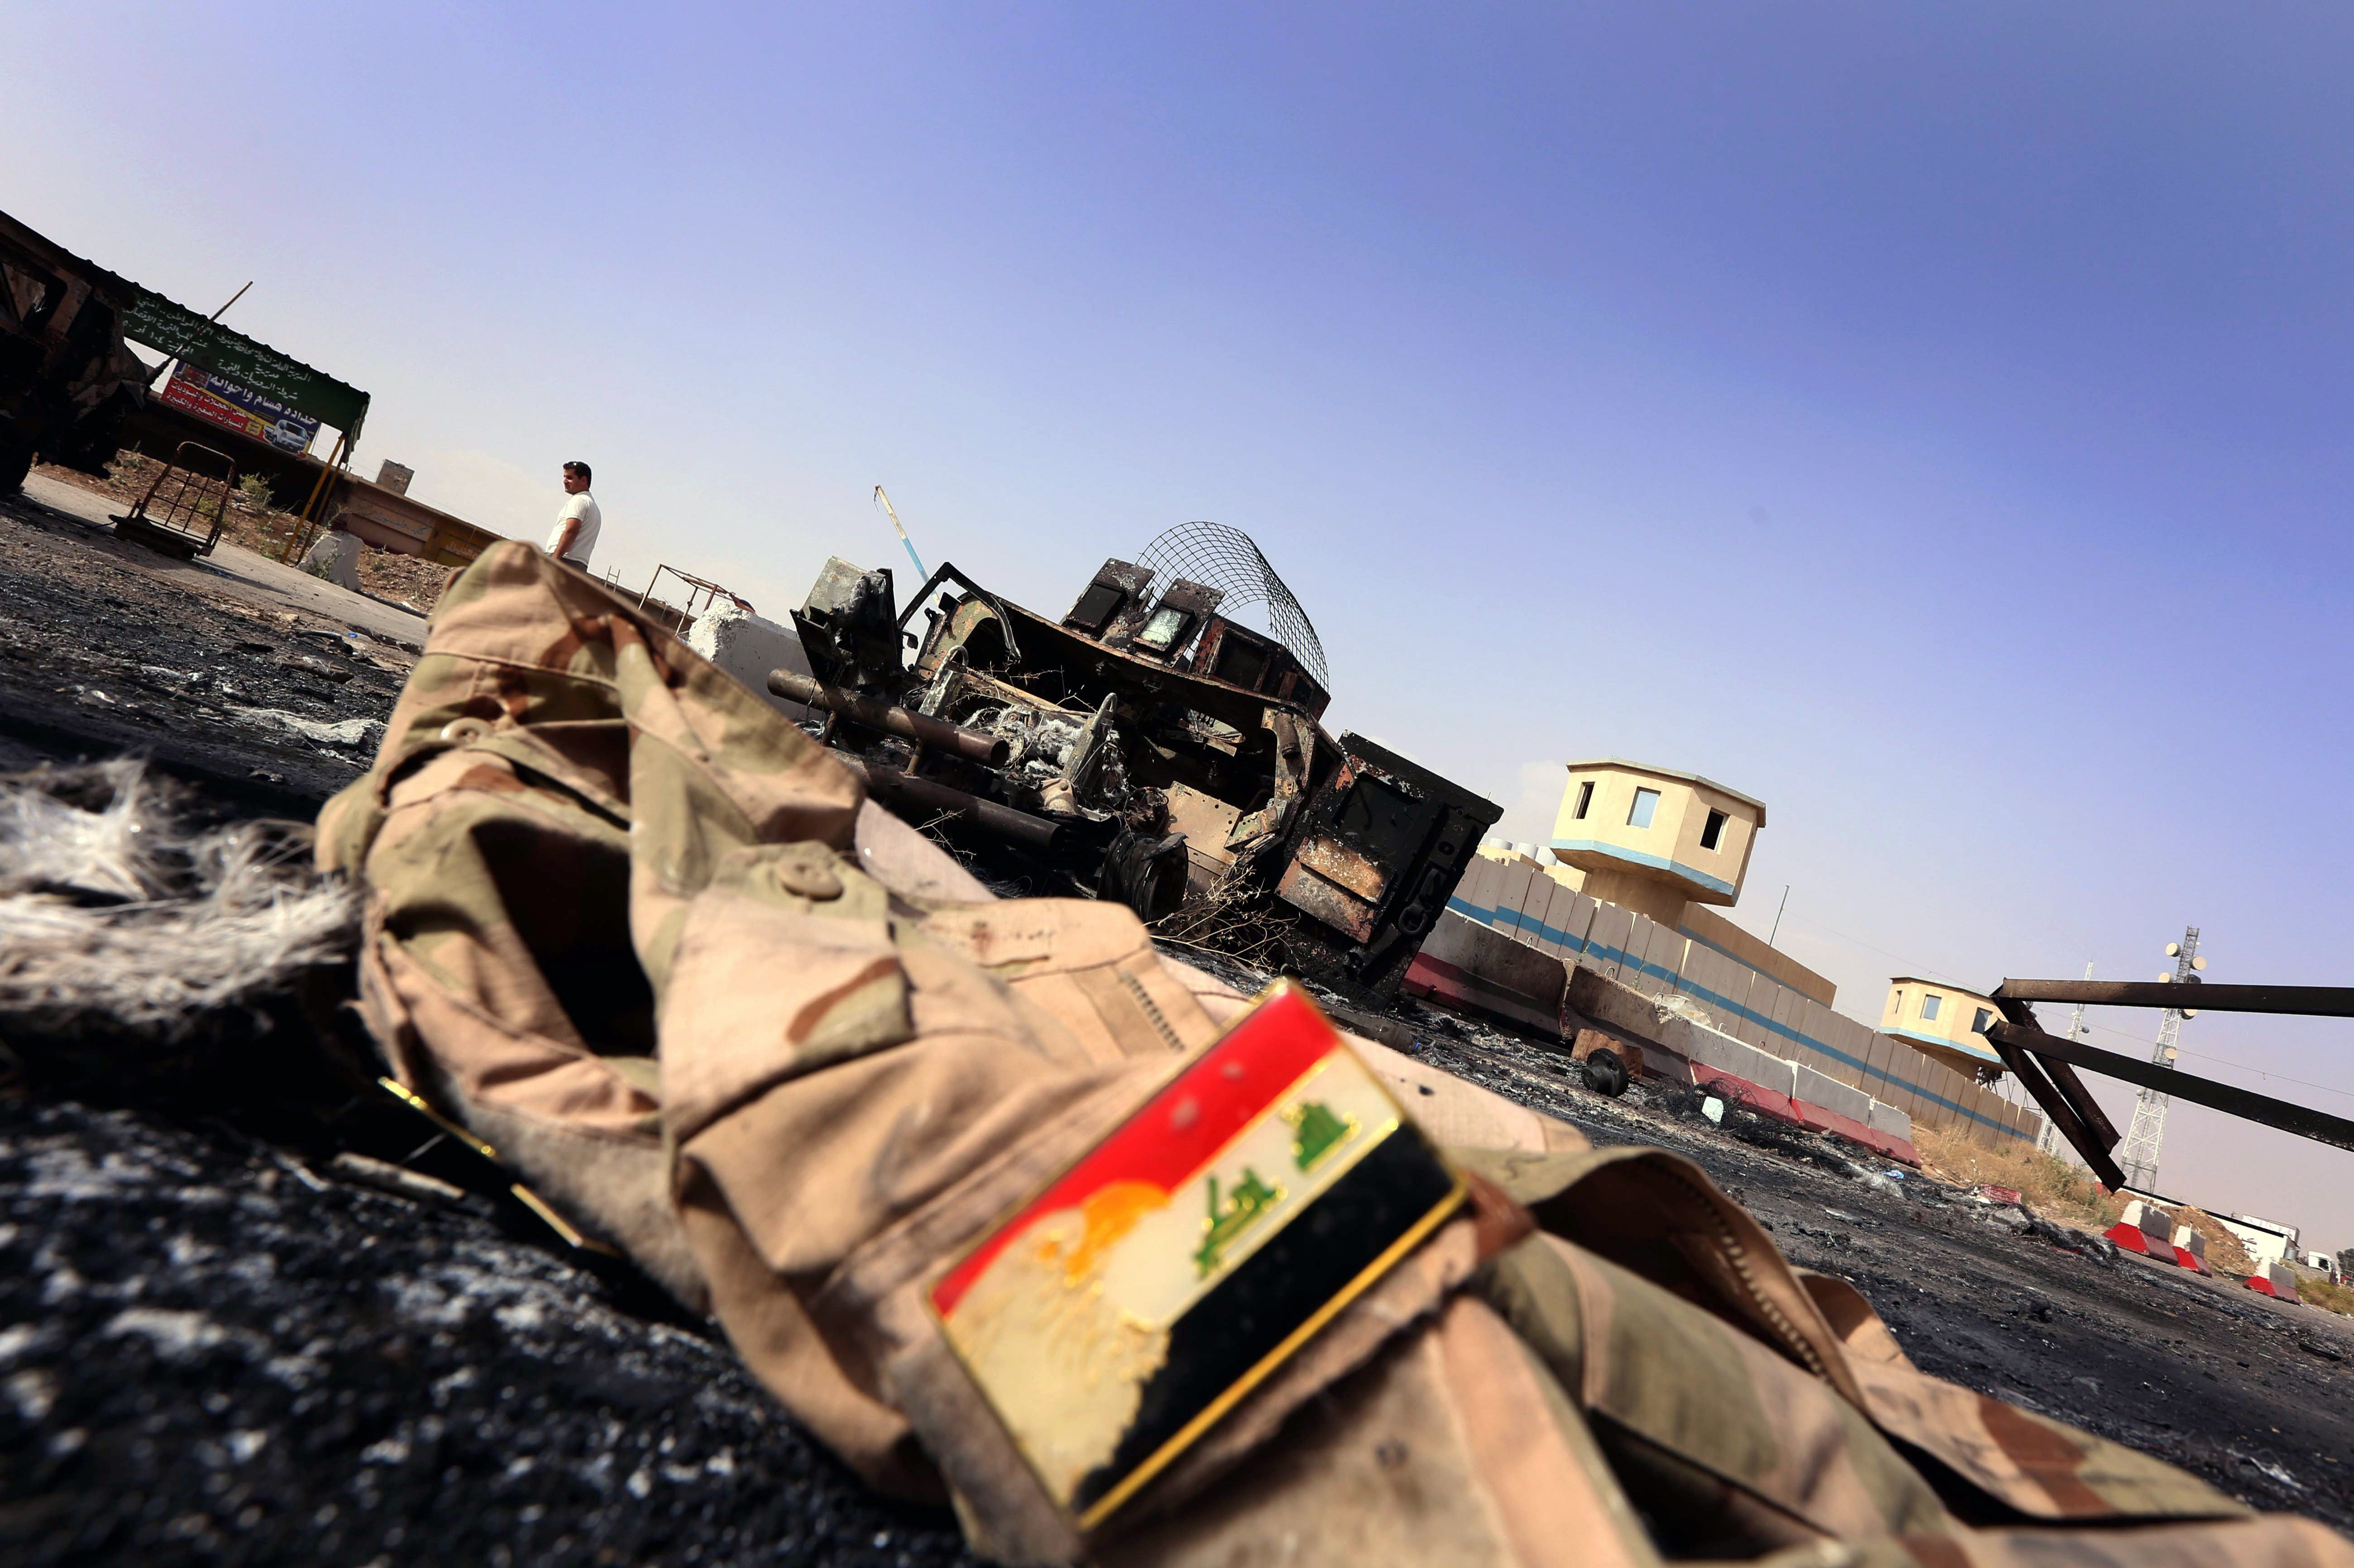 A jacket belonging to an Iraqi Army uniform lies on the ground in front of the remains of a burnt out Iraqi army vehicle close to the Kukjali Iraqi Army checkpoint, some 10km east of the northern city of Mosul, Iraq on June 11, 2014.